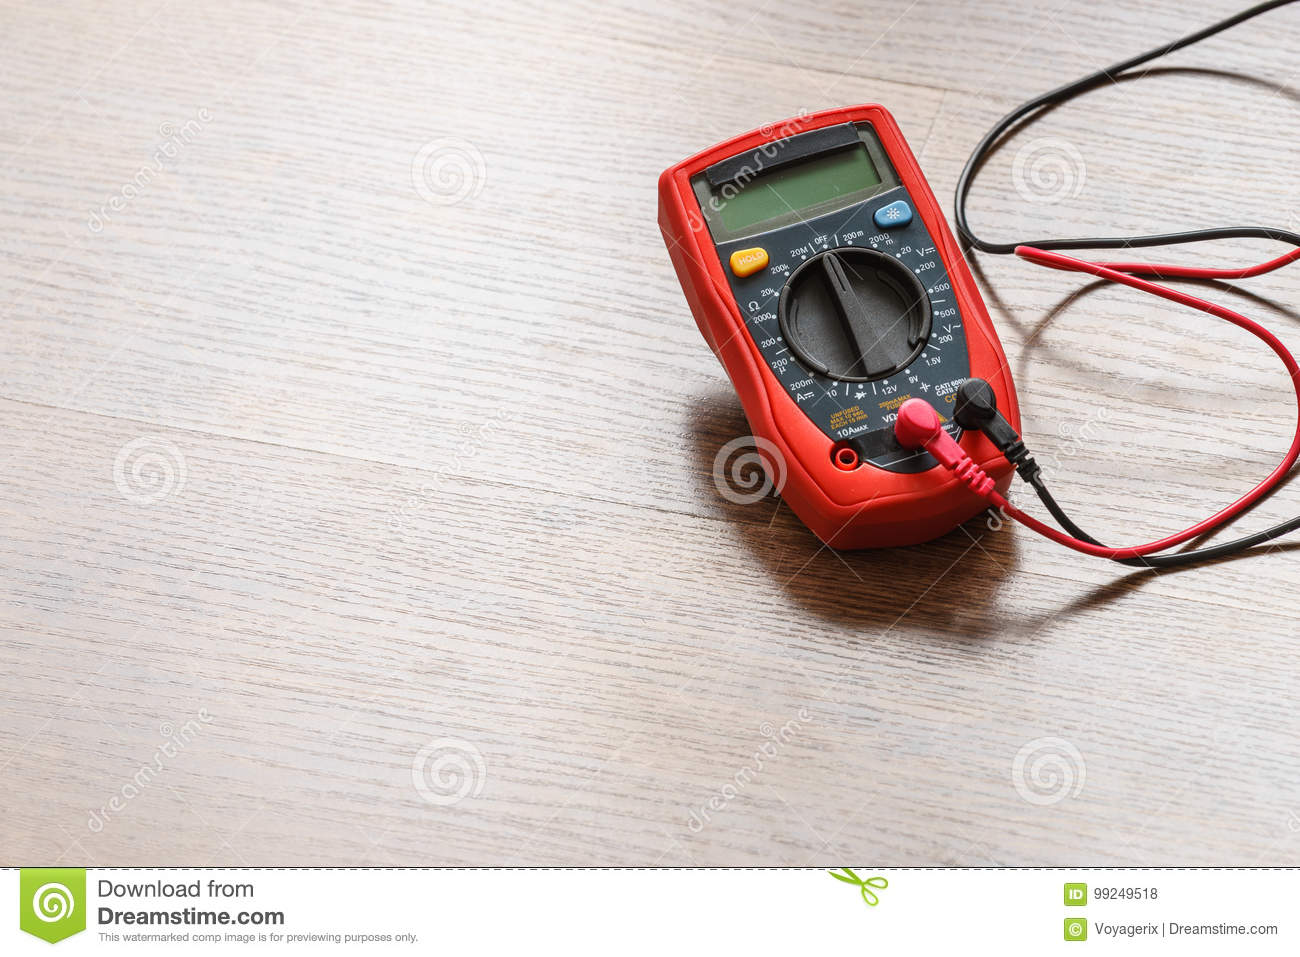 Multimeter for measurement of voltage